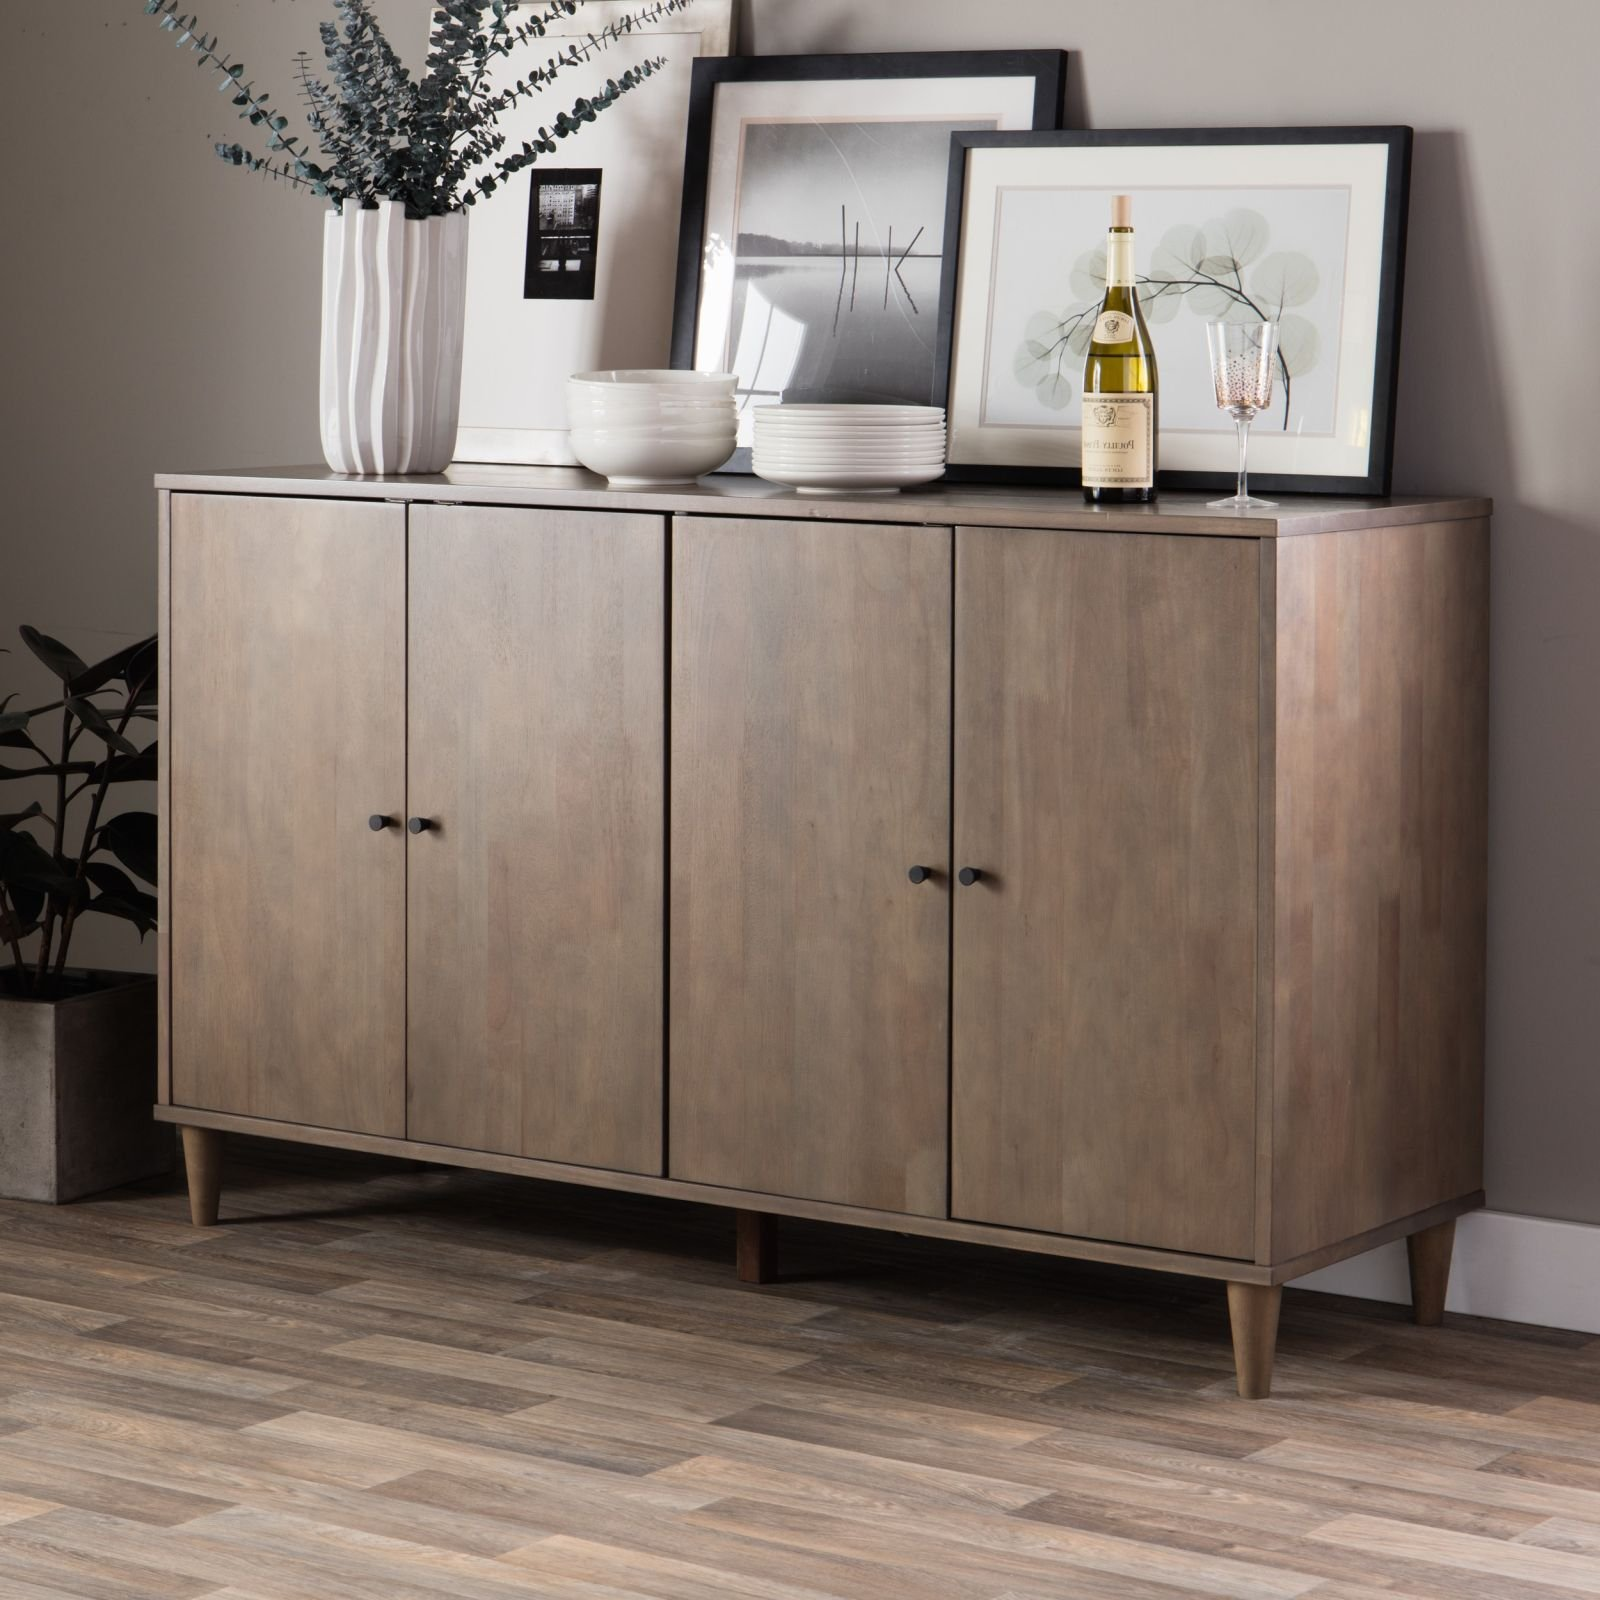 Modern Farmhouse Buffet Suitable For Kitchen And Dining ...